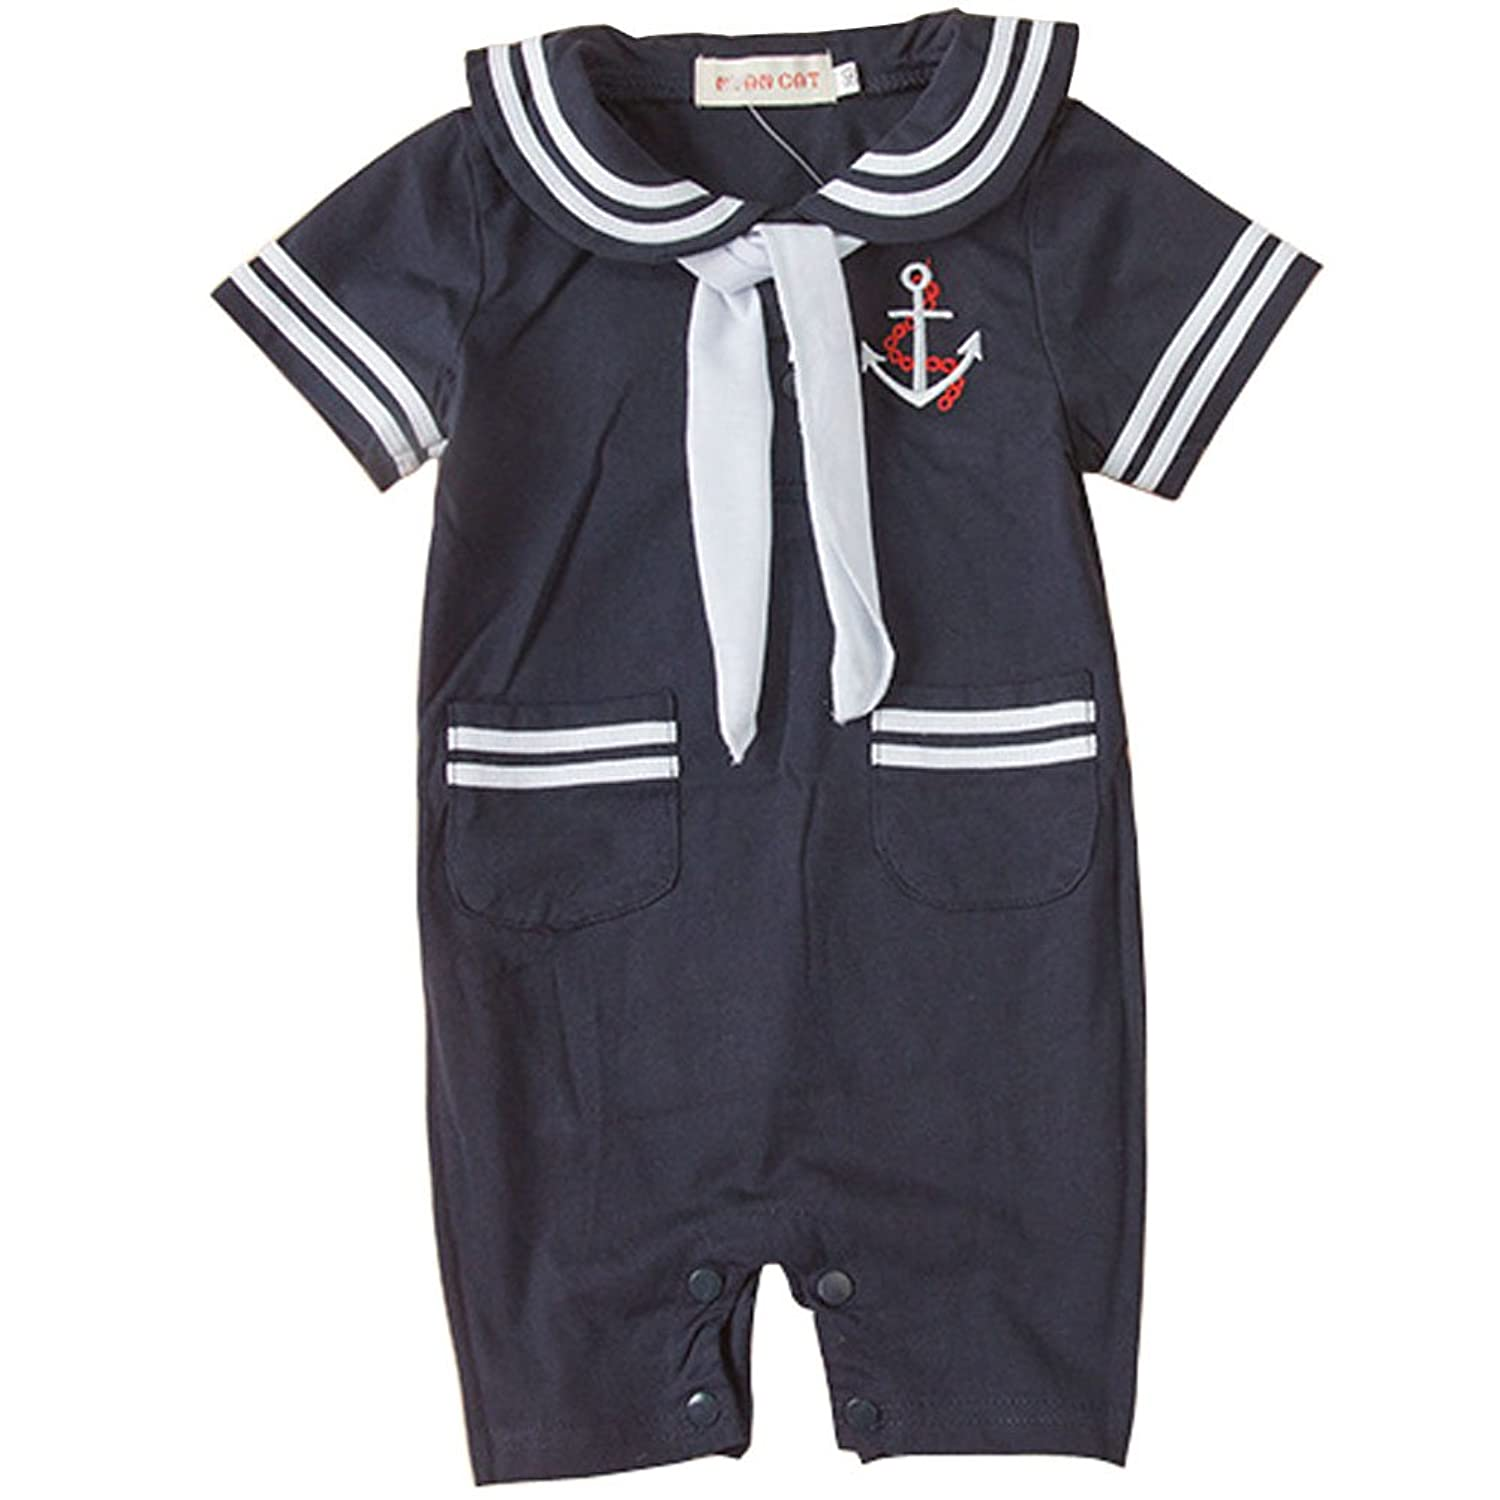 1920s Children Fashions: Girls, Boys, Baby Costumes Carrillos Boys Short Sleeve Sailor Suit Romper Onesie Outfit $14.99 AT vintagedancer.com